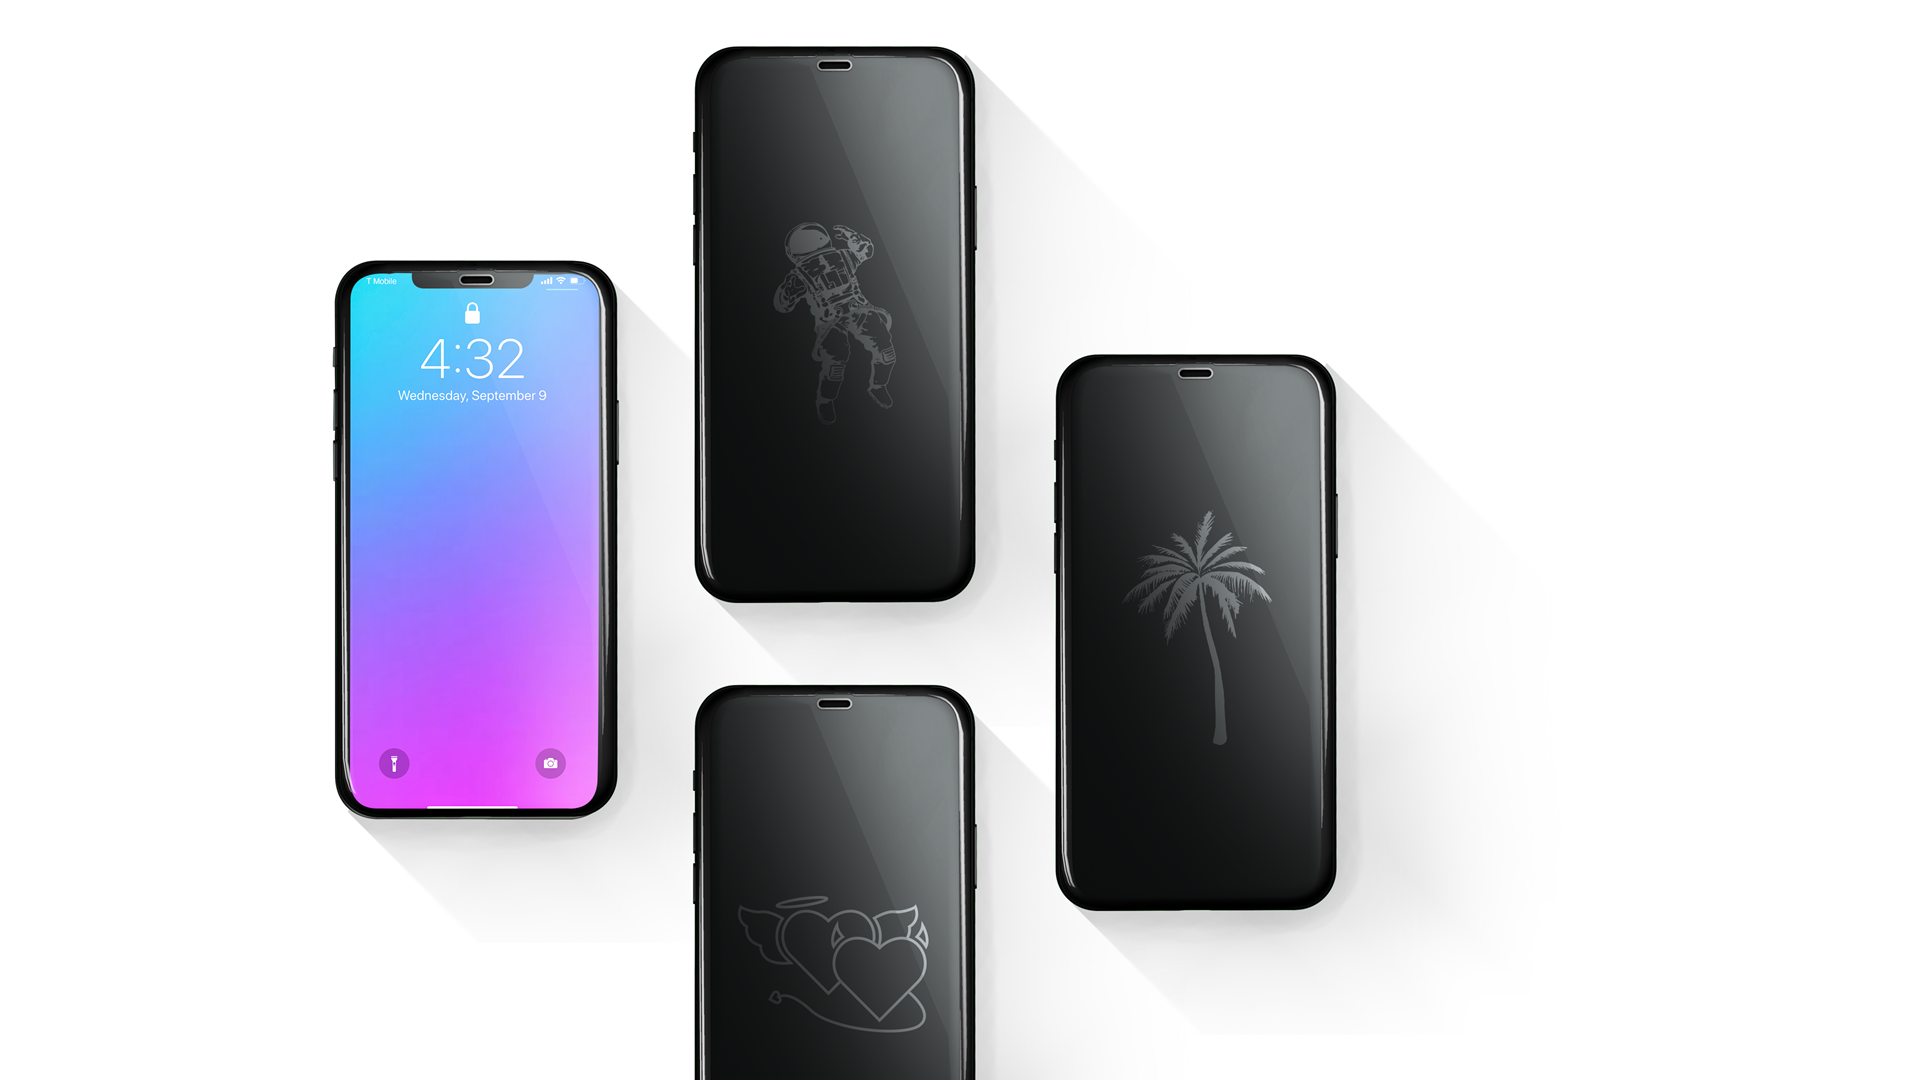 The Glassie Screen Protector Shows Your Style While Your Phone Sleeps